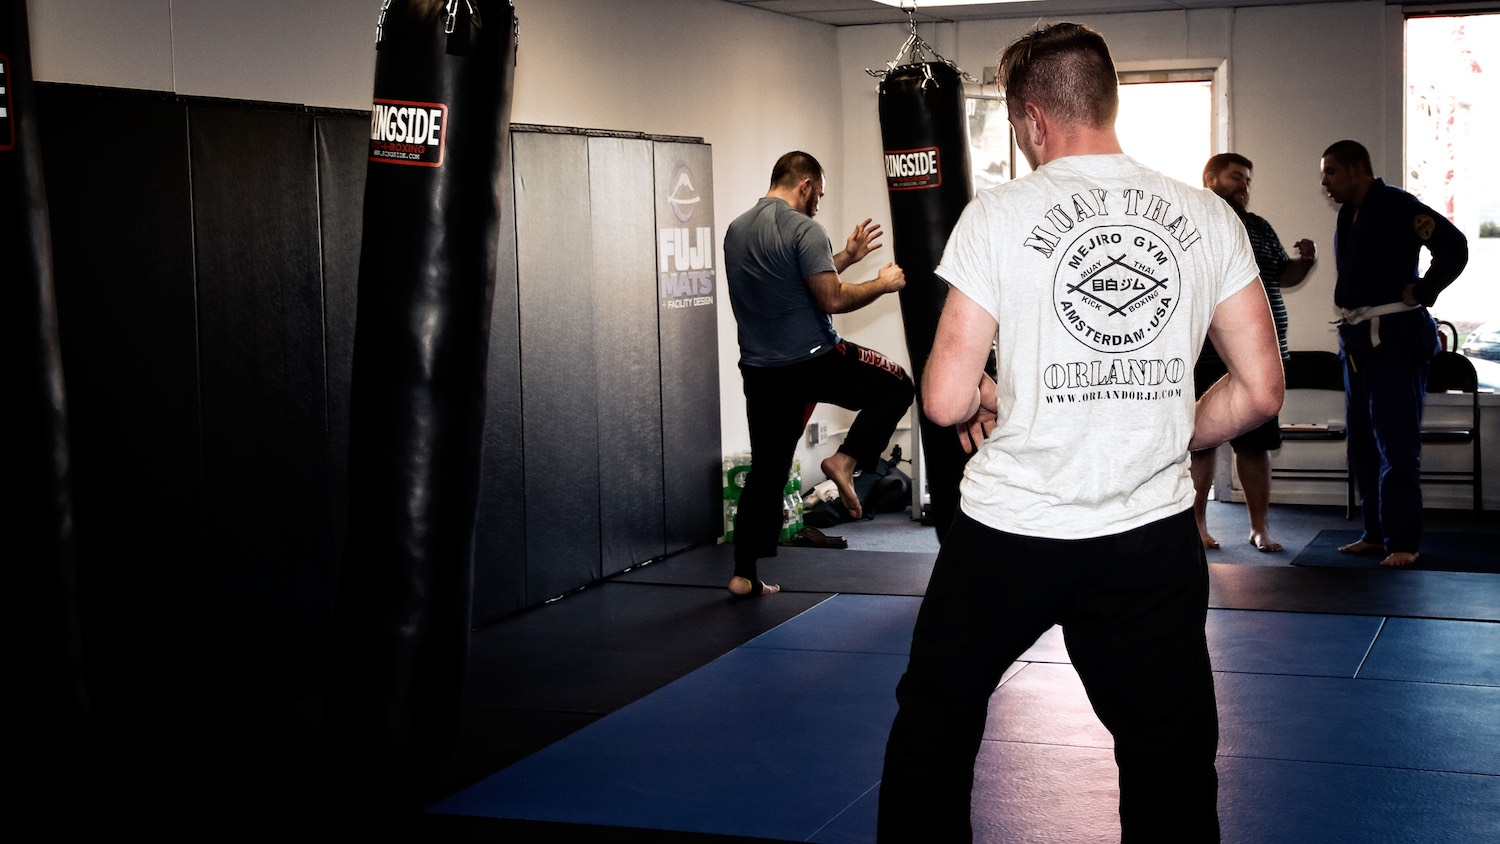 Fighters training at Resurgence MMA in Appleton, Wisconsin